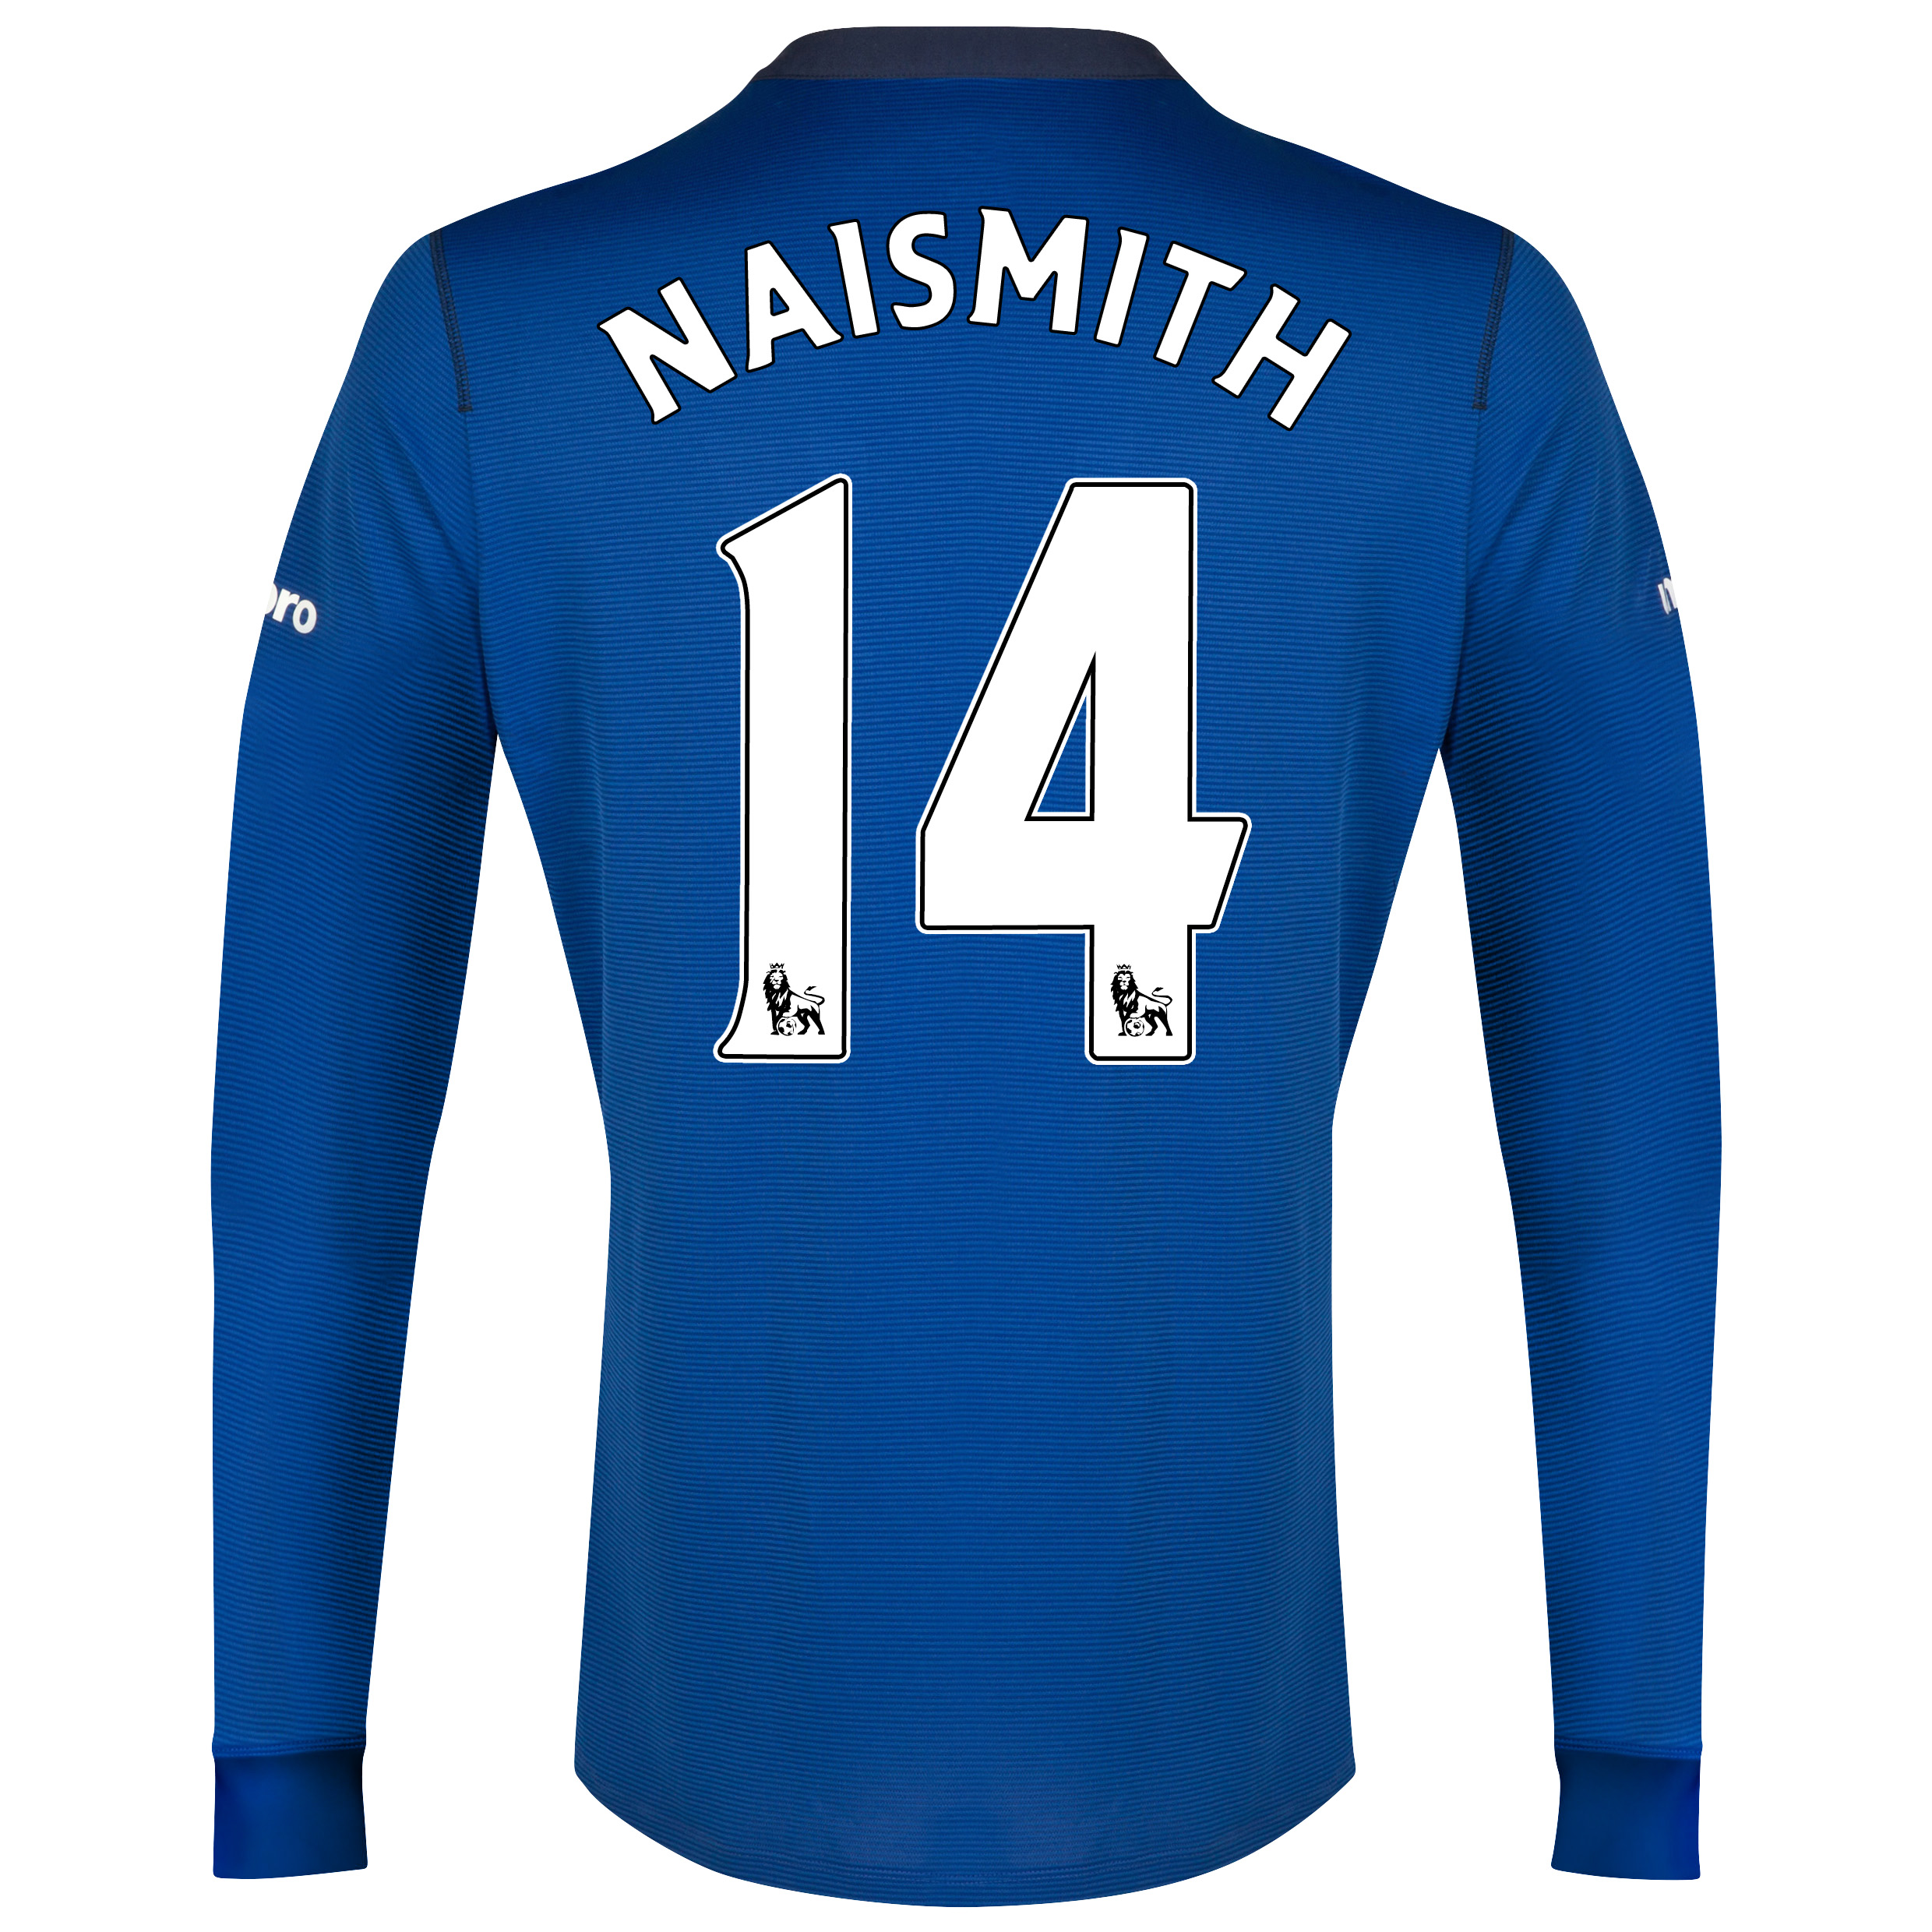 Everton LS Home Shirt 2014/15 - Junior with Naismith 14 printing